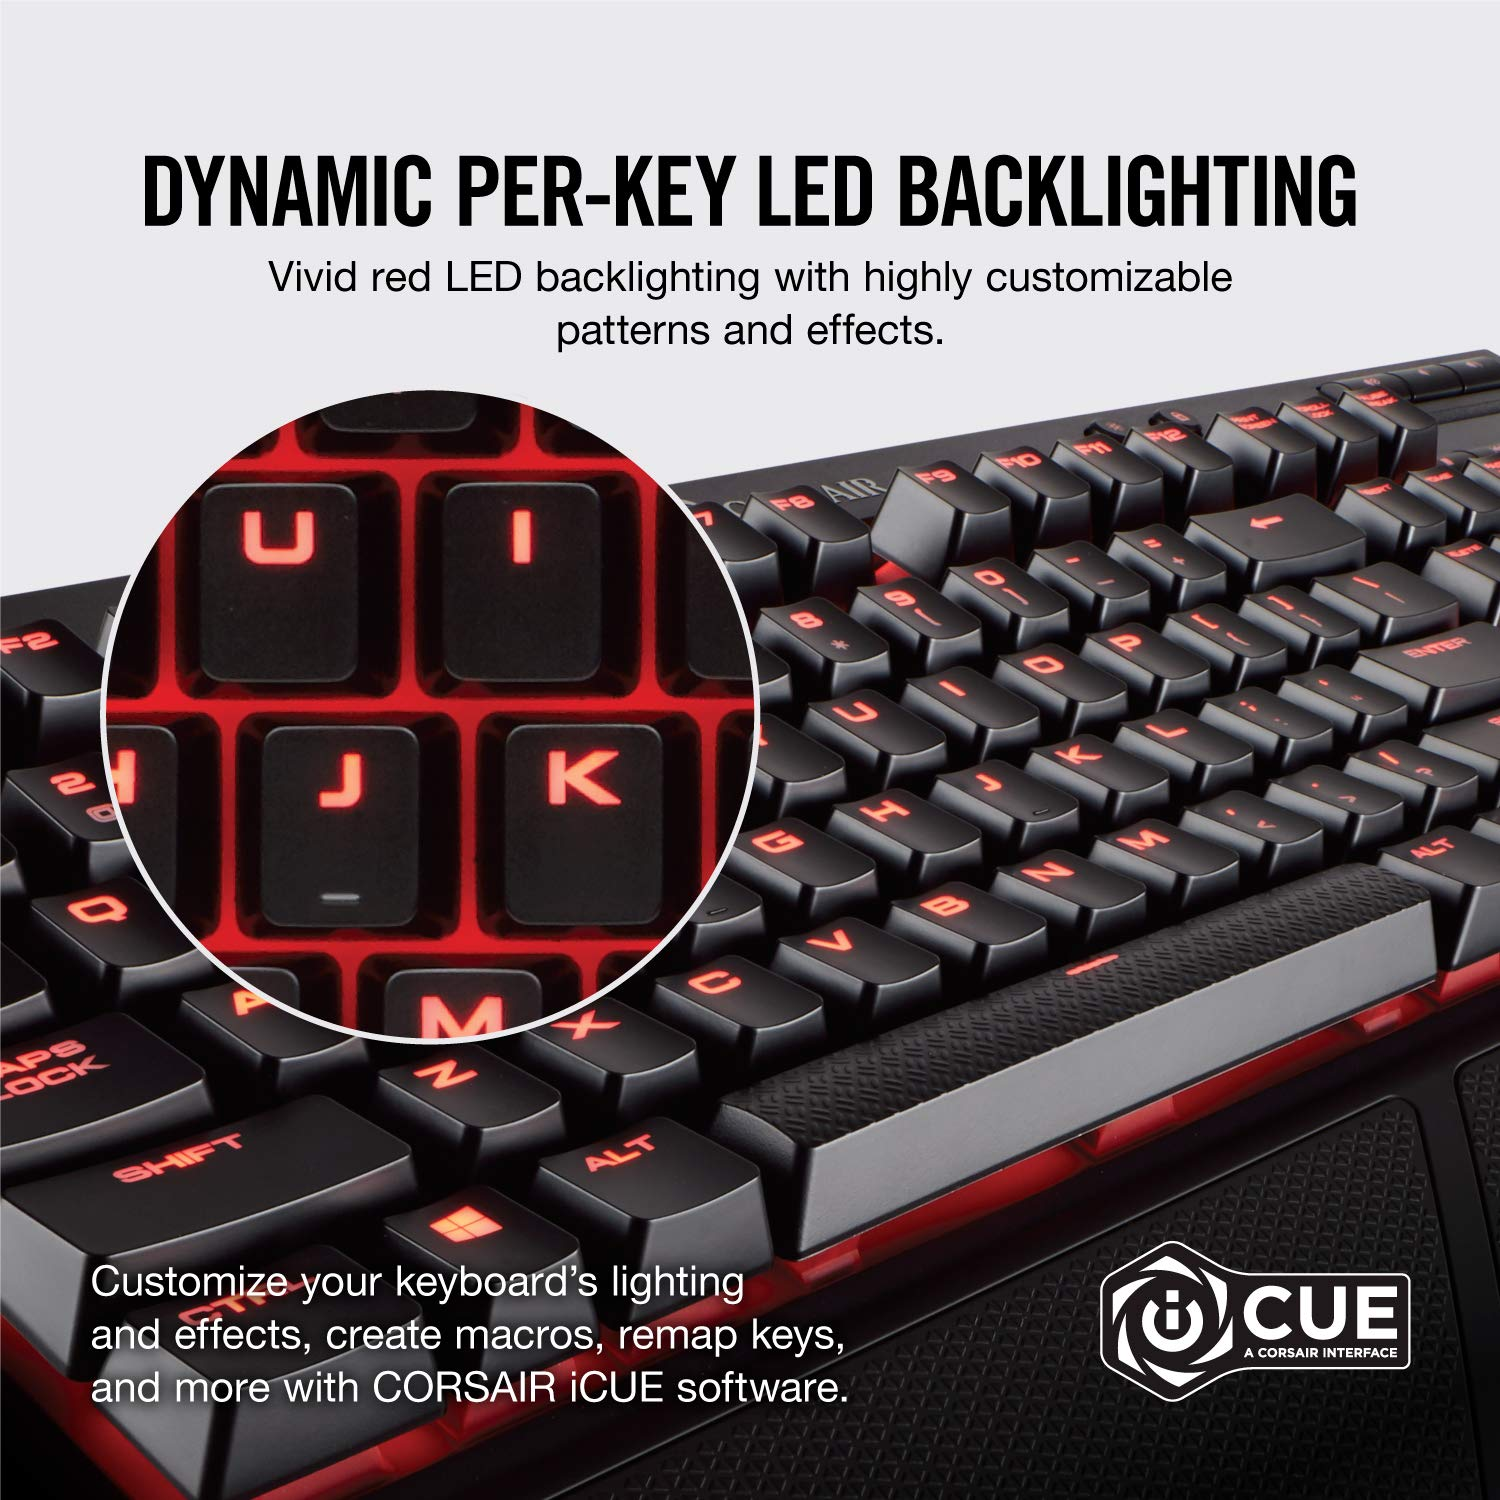 9a6971a268a Corsair K68 Red LED Mechanical Gaming Keyboard (Cherry MX Red Switches:  Linear and Fast, Red LED Backlighting, IP32 Dust and Spill Resistant, ...